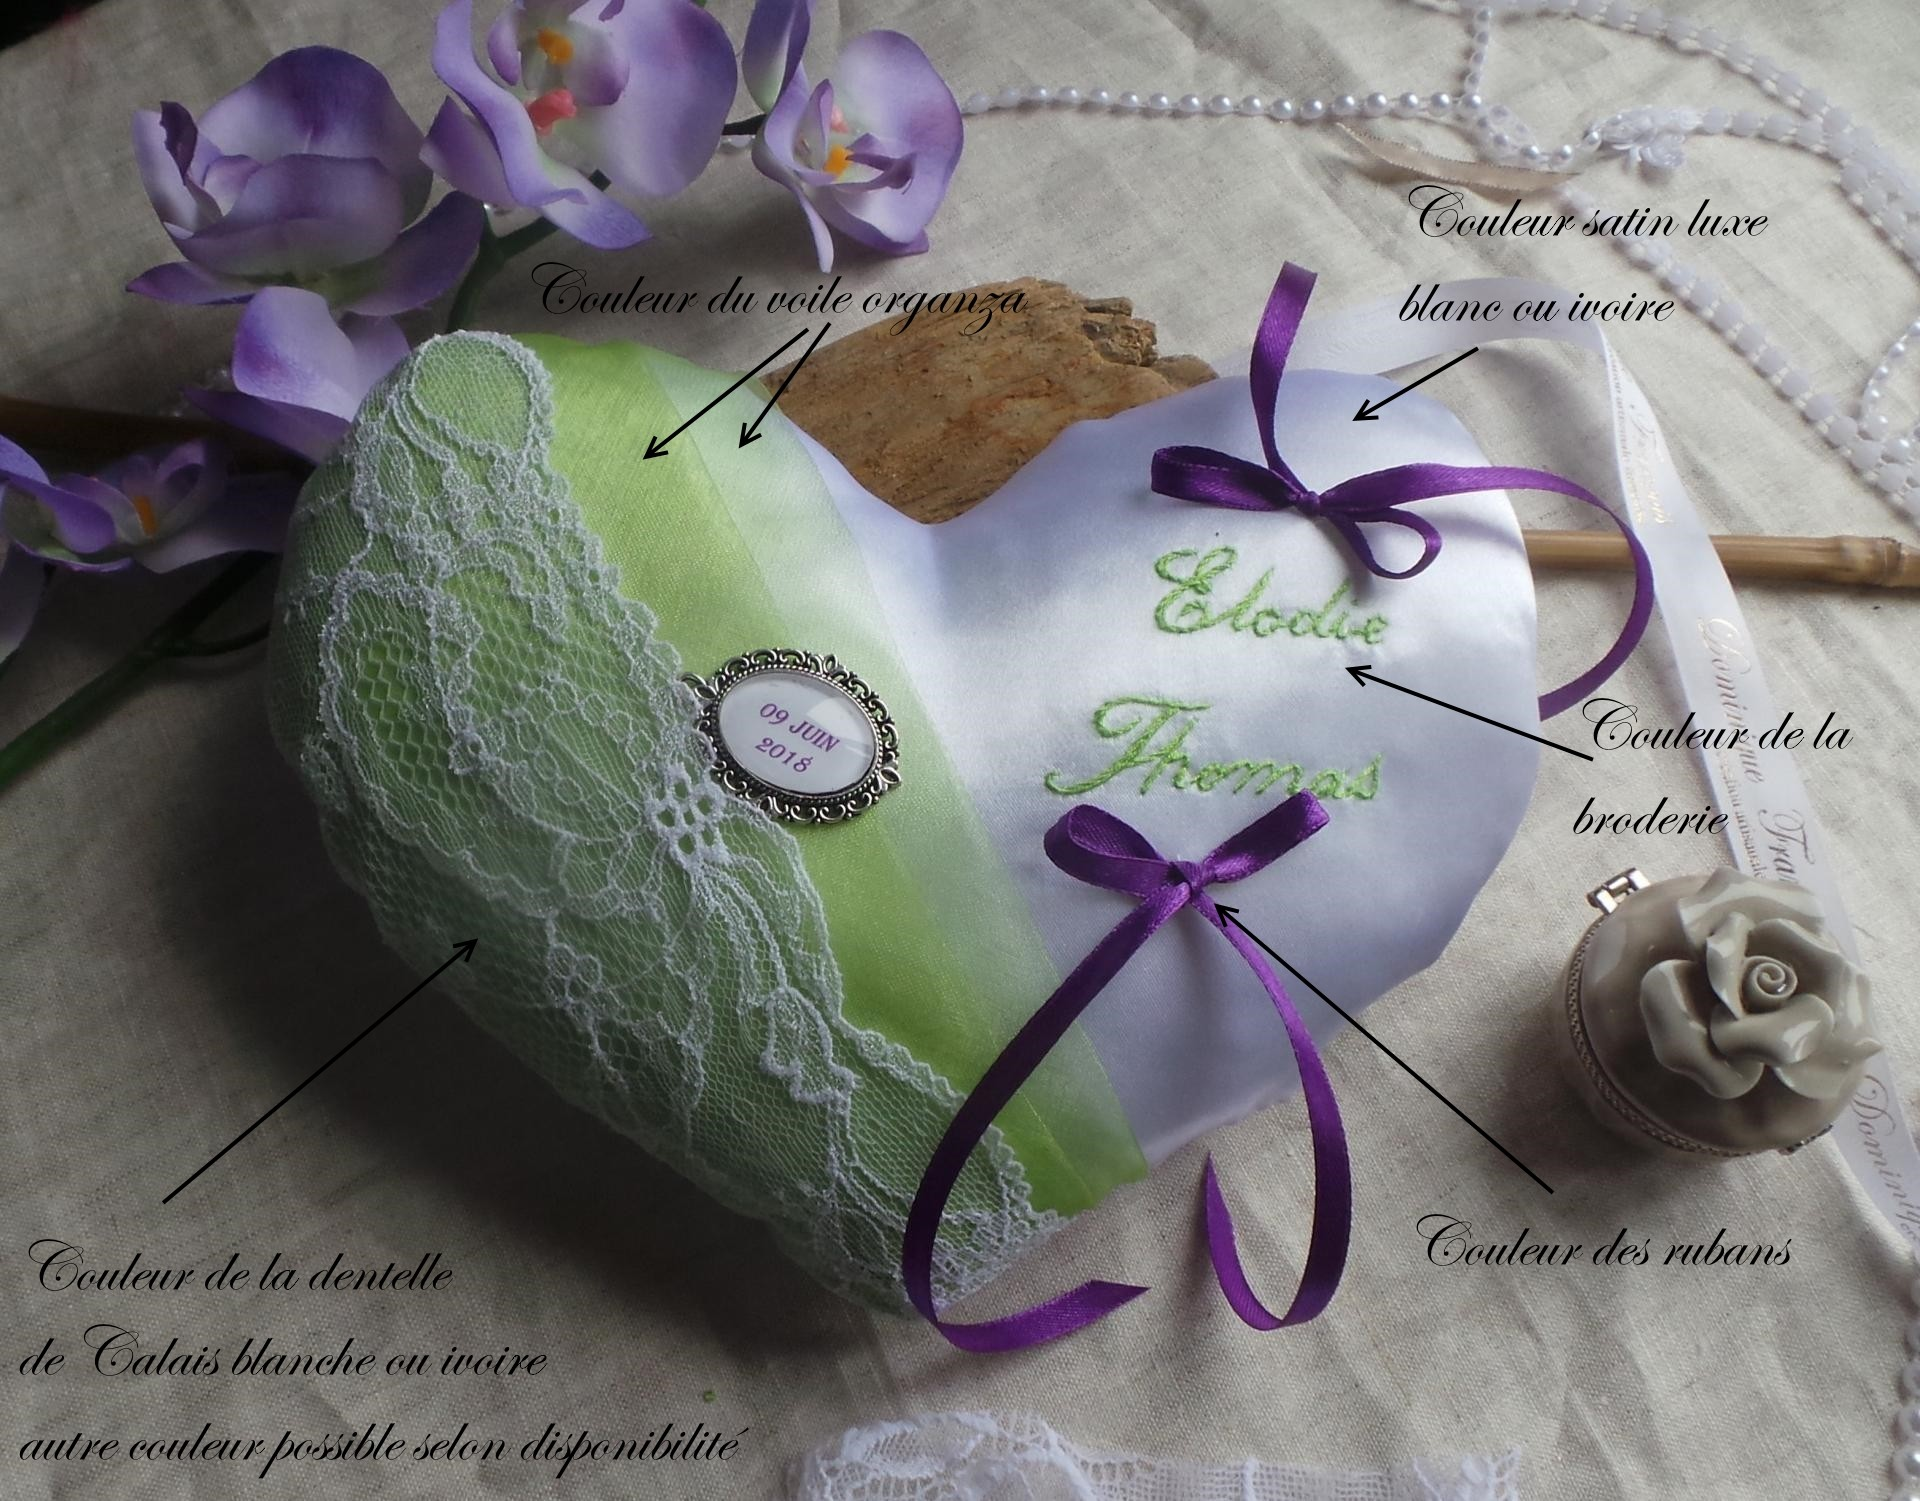 Coussin alliance personnalise forme coeur vert anis blanc violet